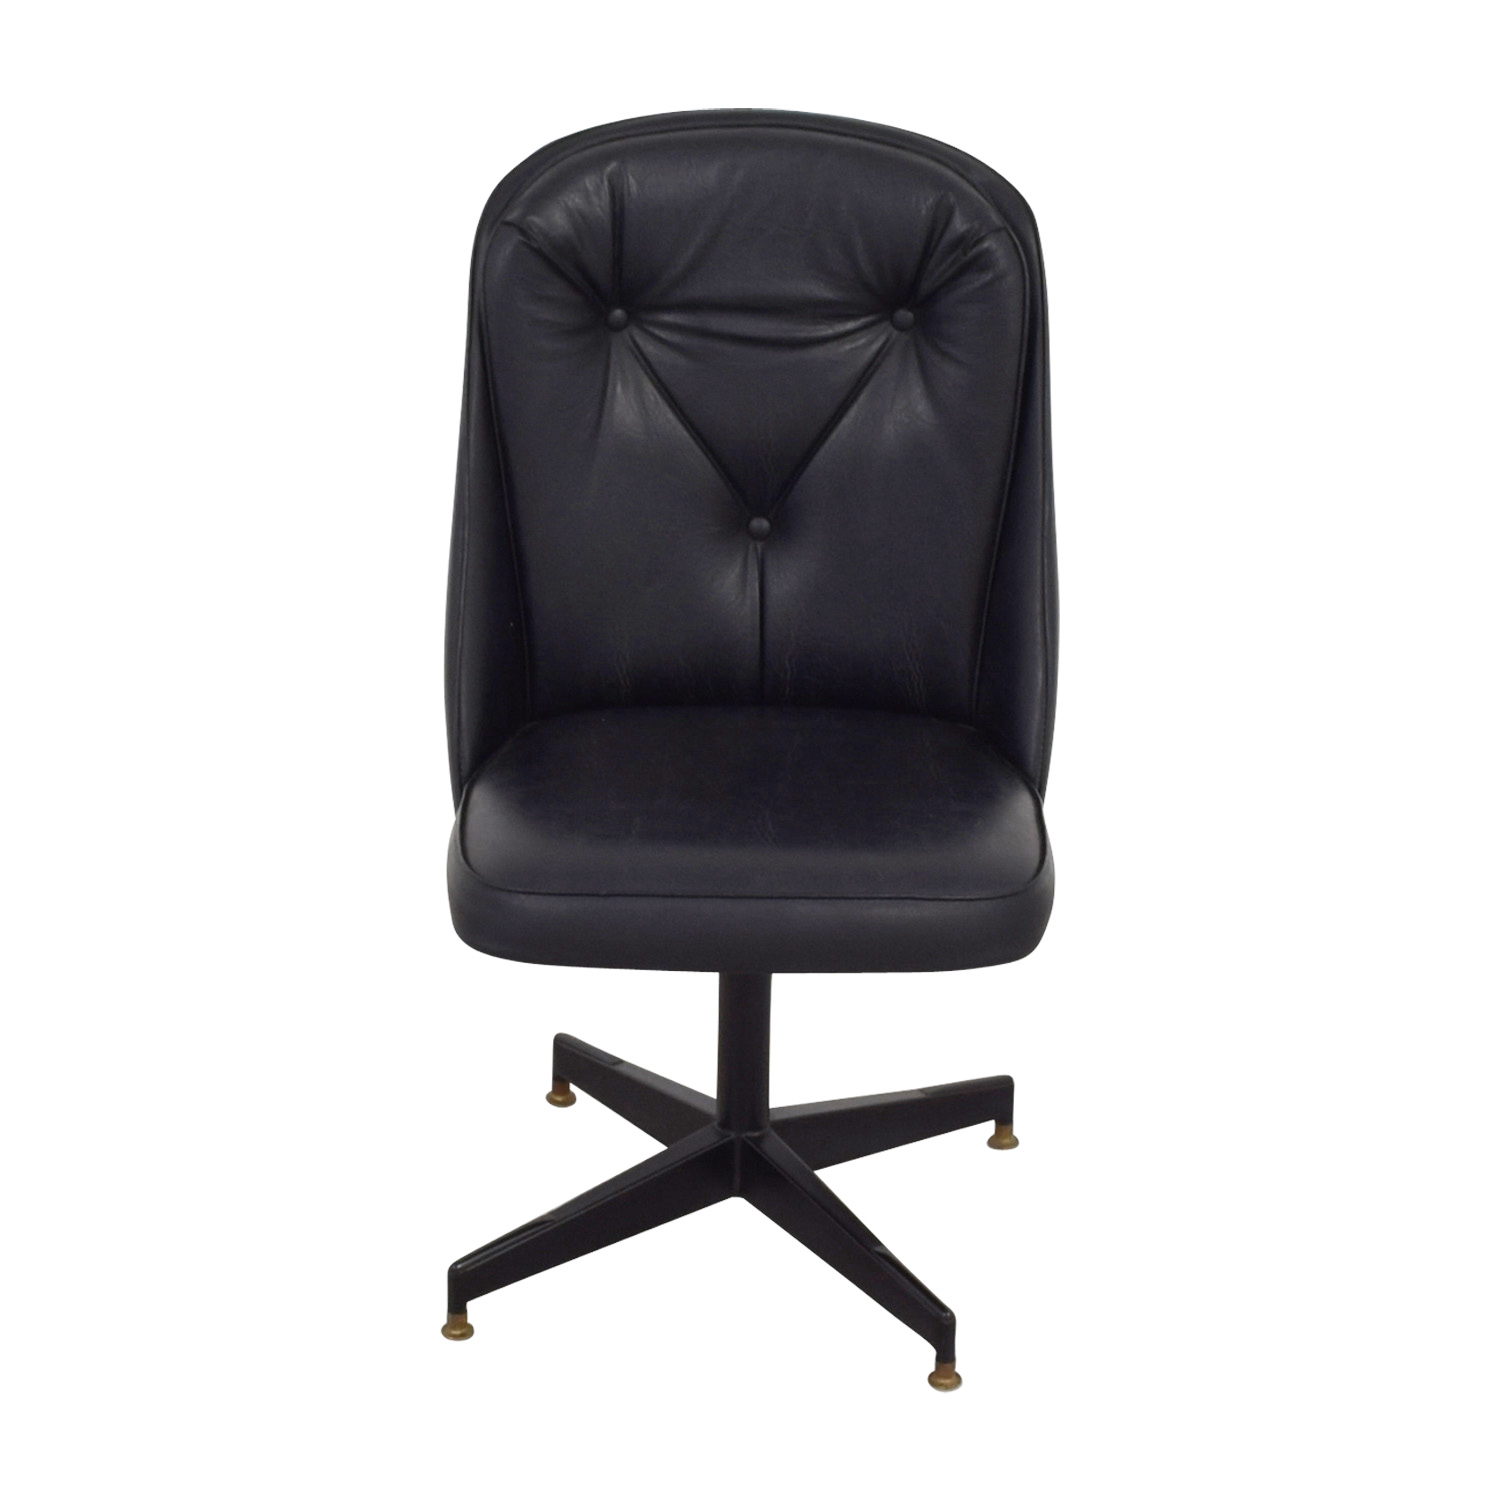 ... Black Leather Swivel Office Desk Chair For Sale ...